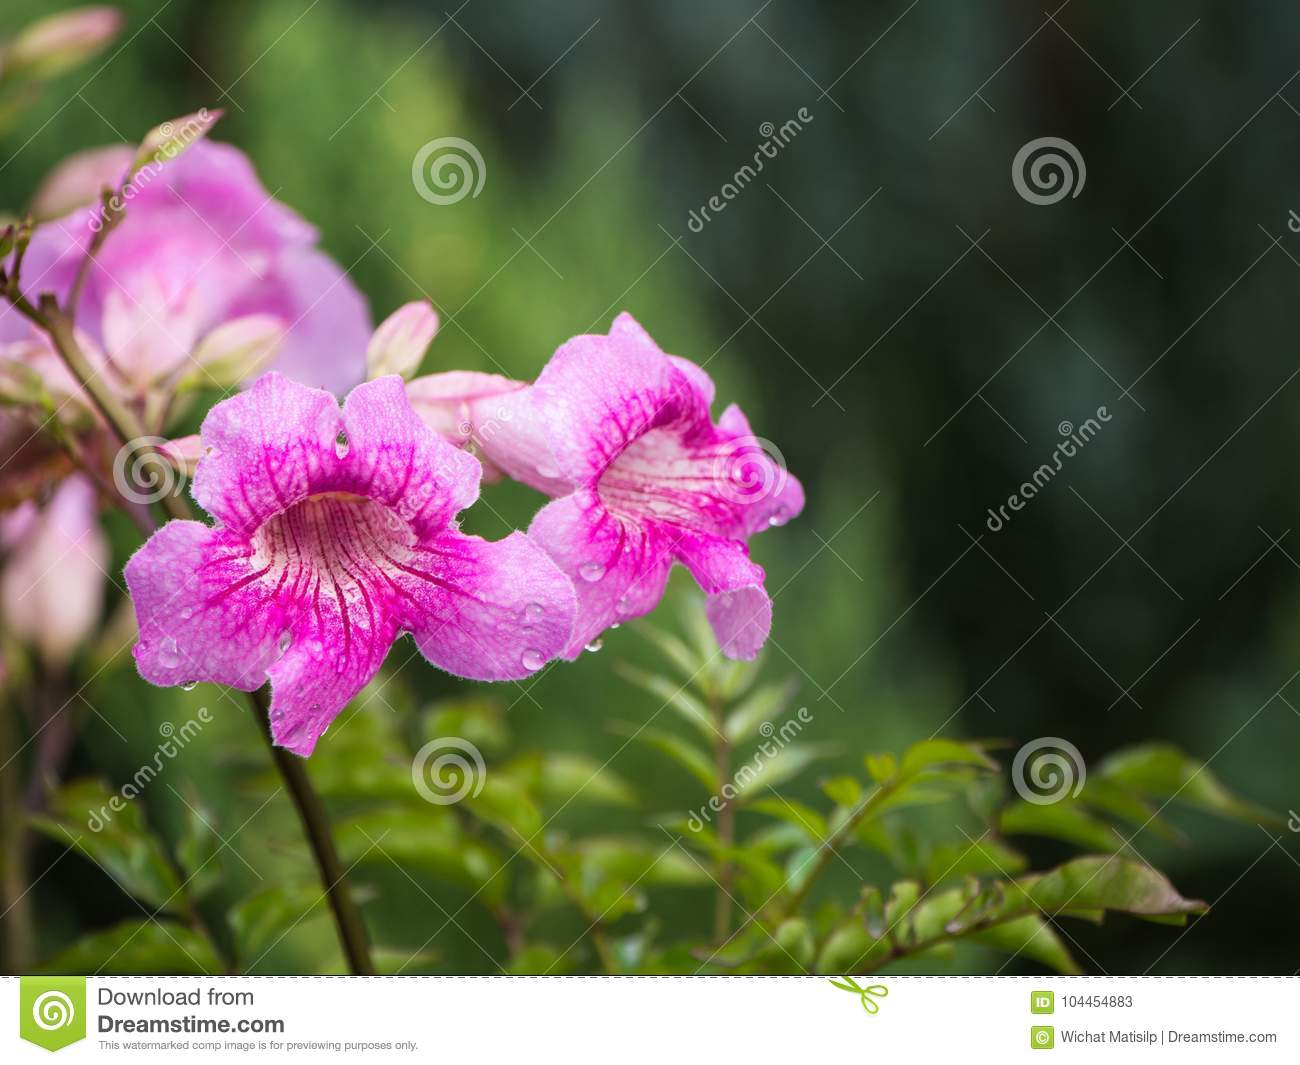 The Pink Trumpet Vine Flower Blooming Stock Image Image Of Bright